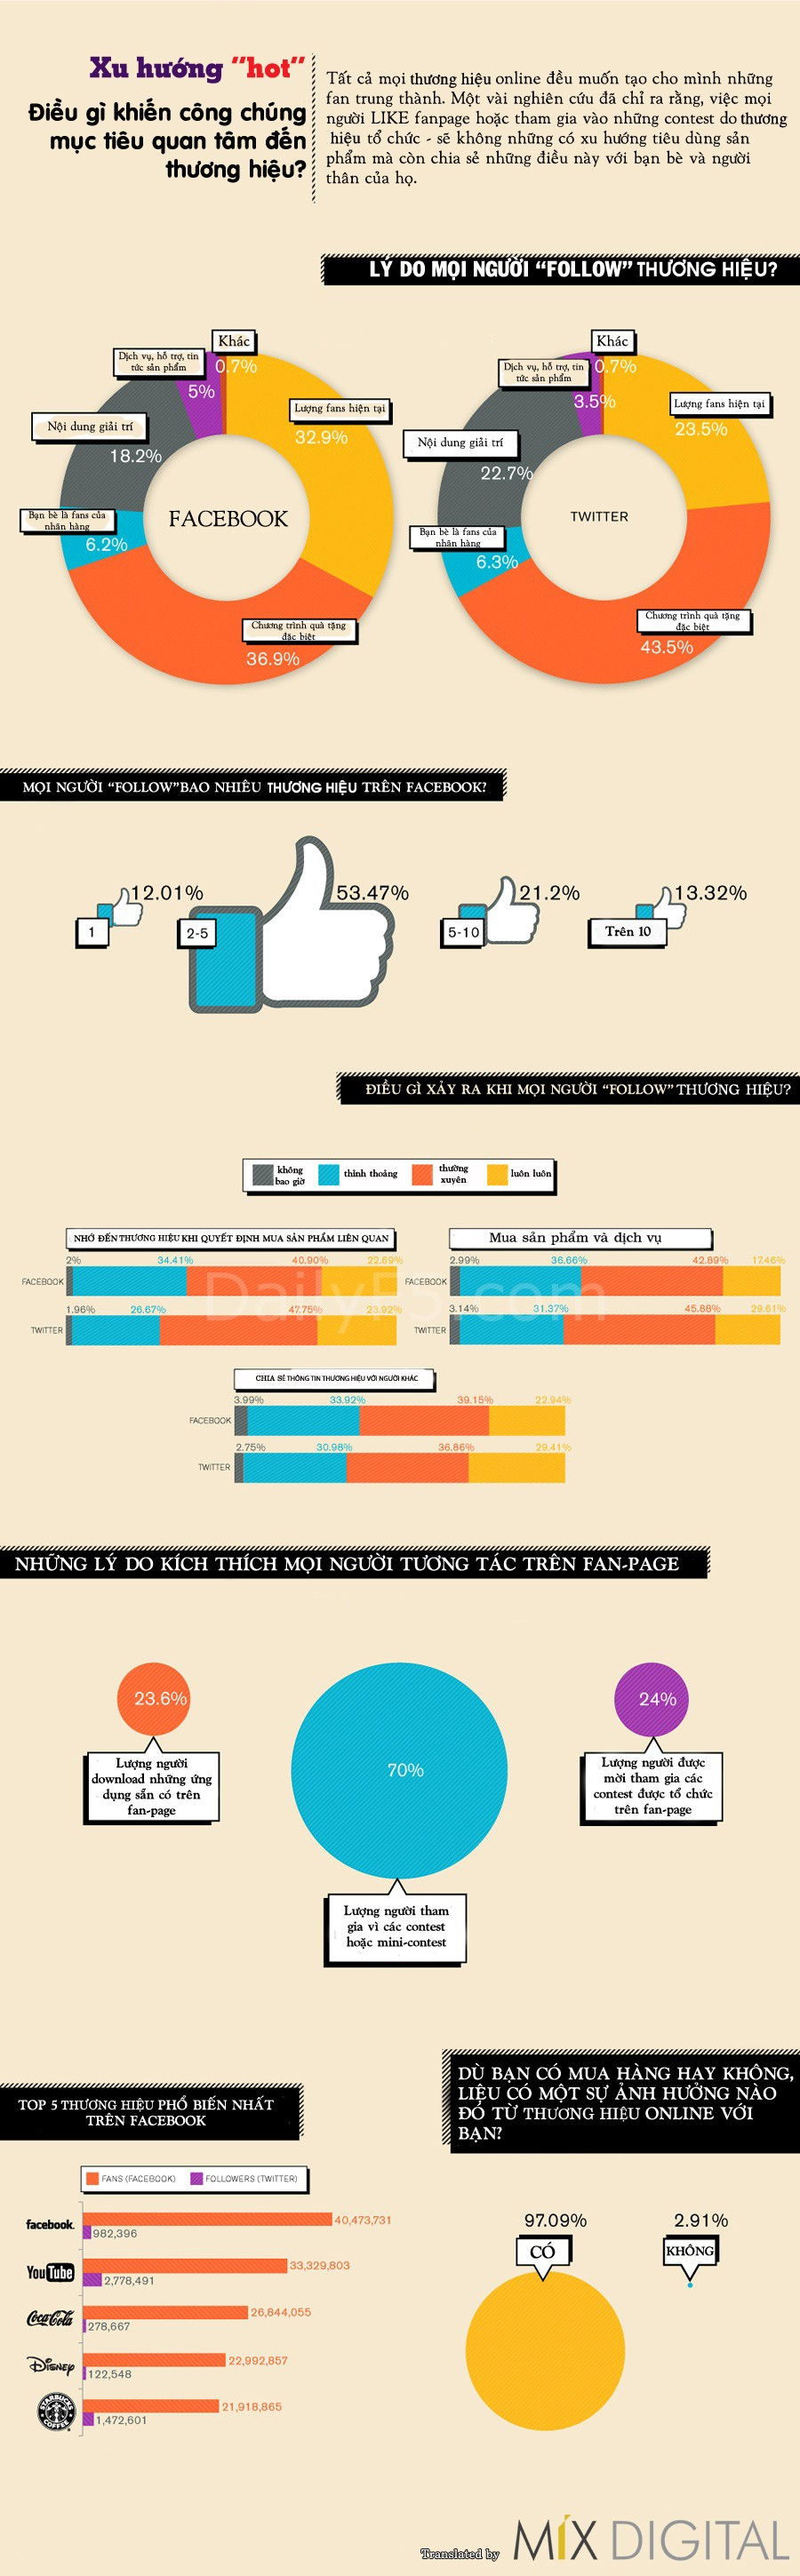 why-people-follow-brands-social-media-infographic2